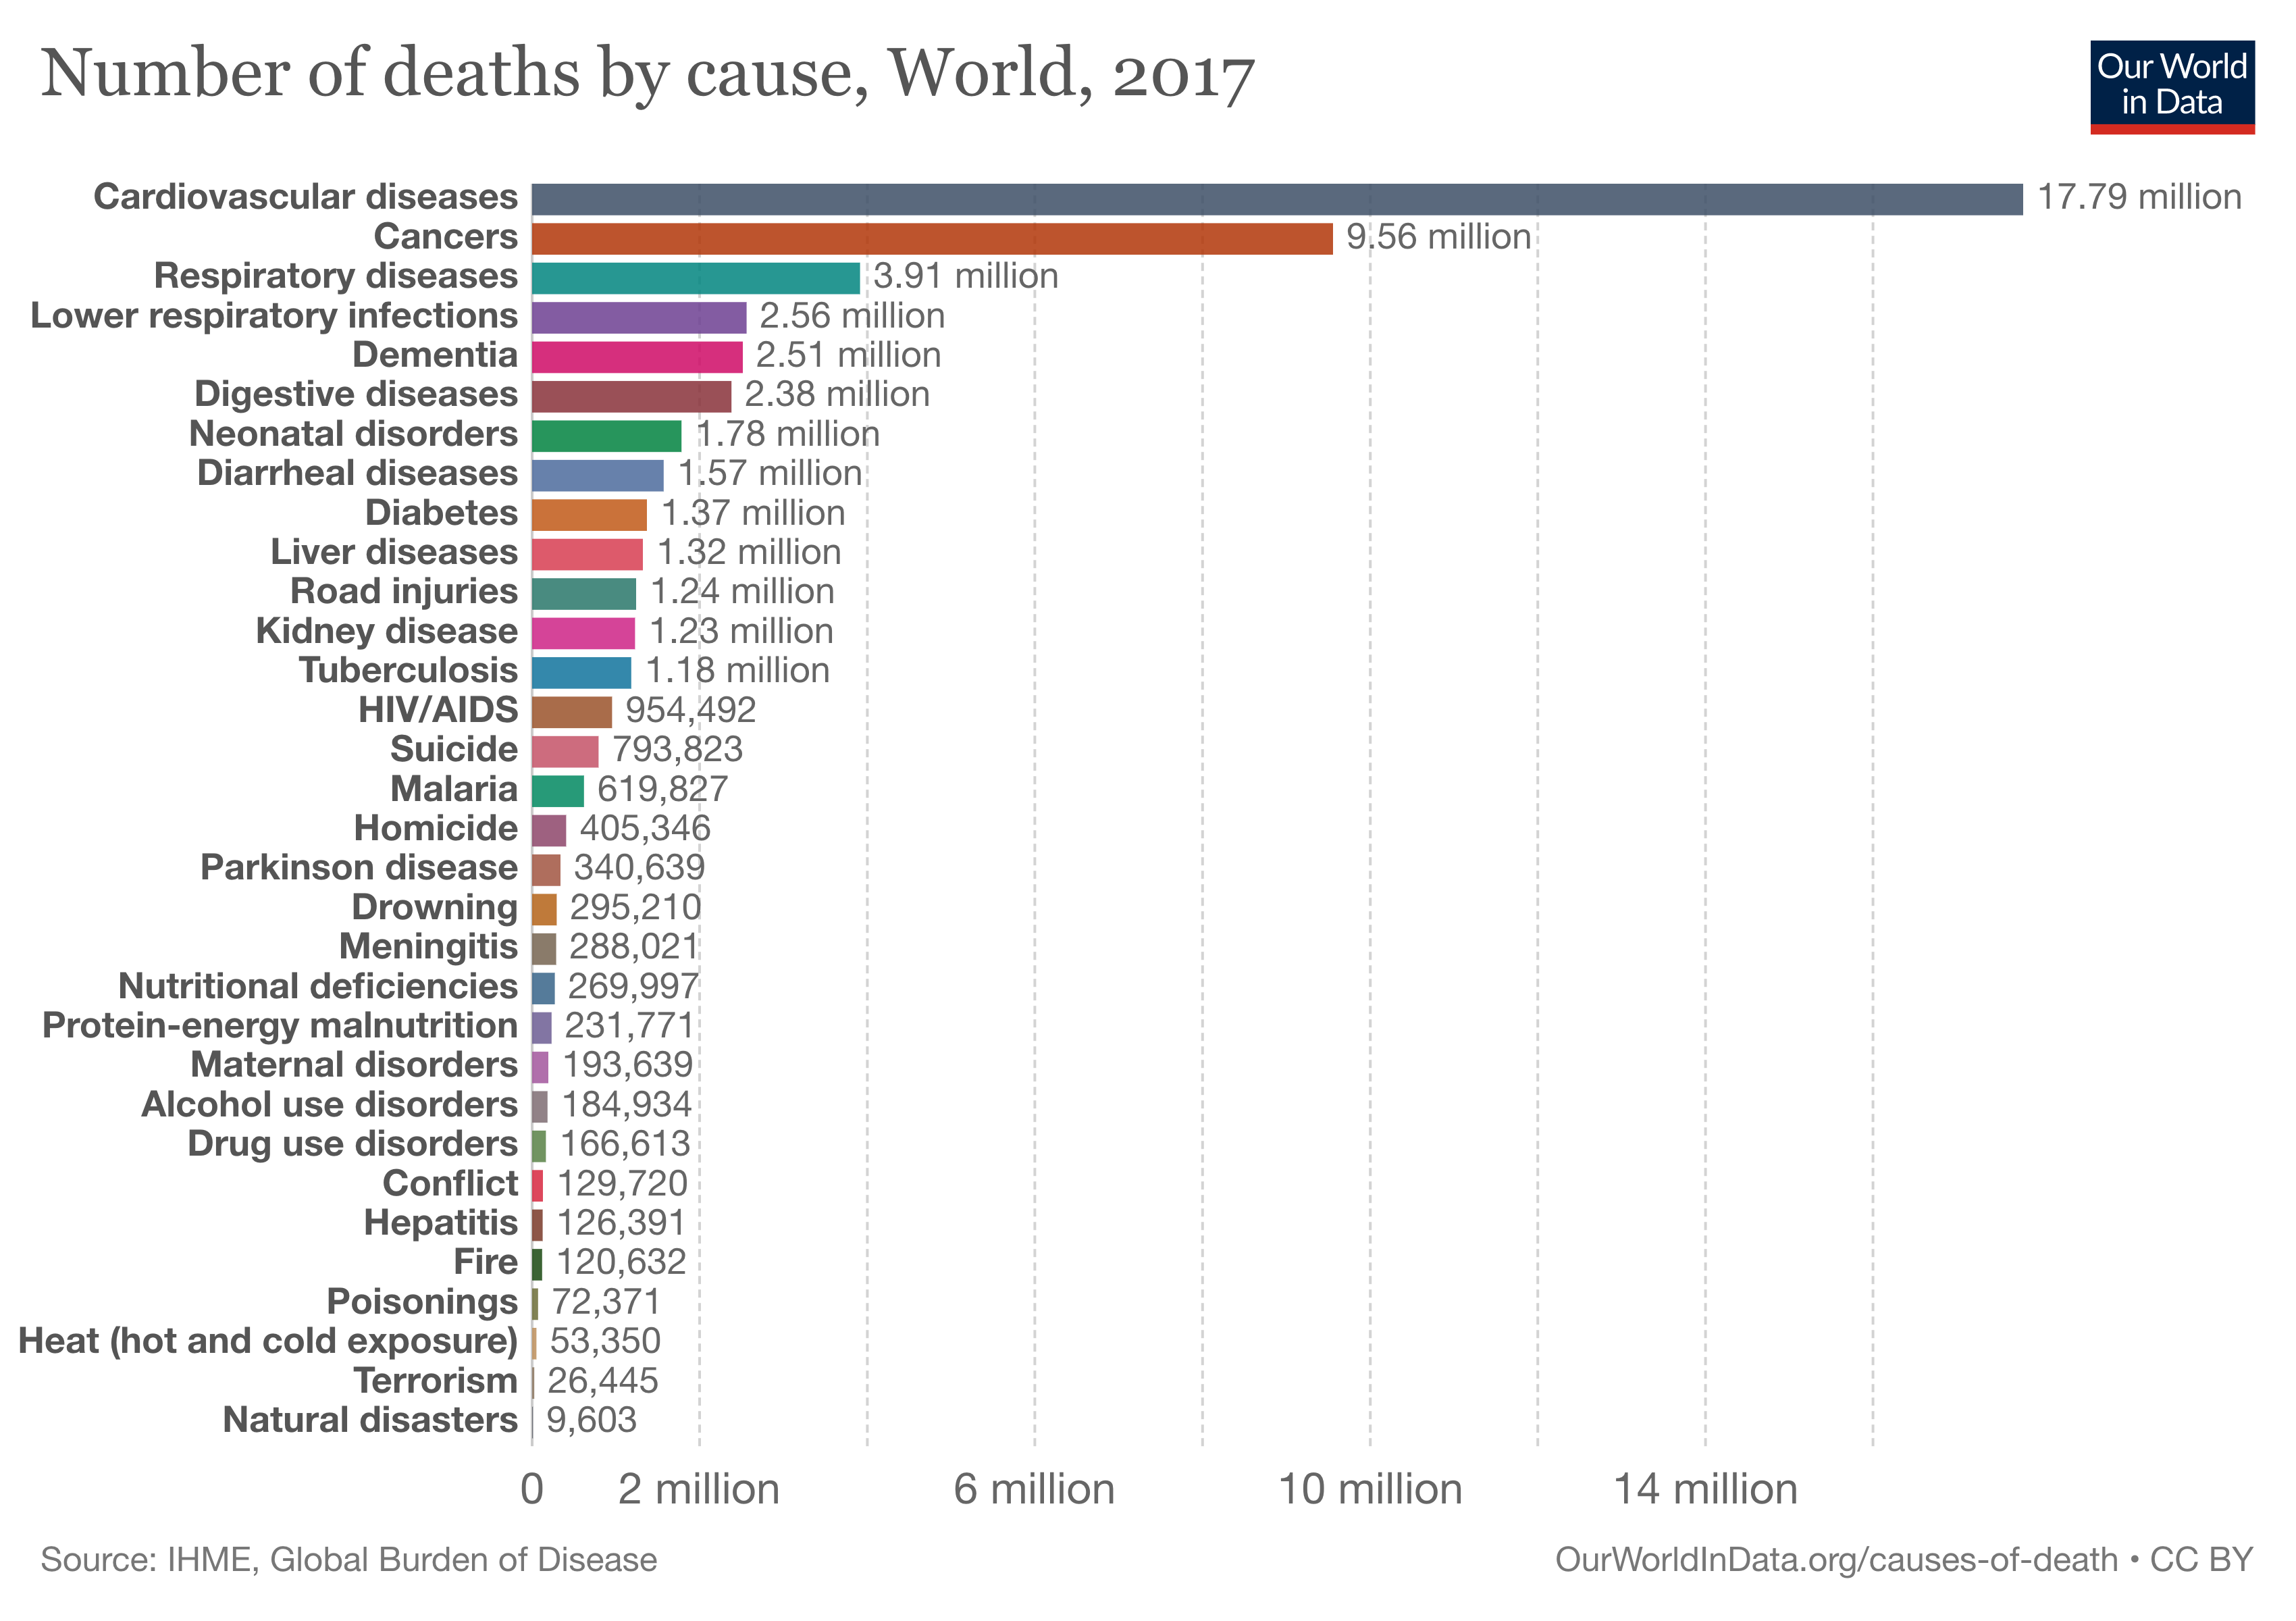 How Does Covid 19 Compare To Other Major Causes Of Death World Economic Forum